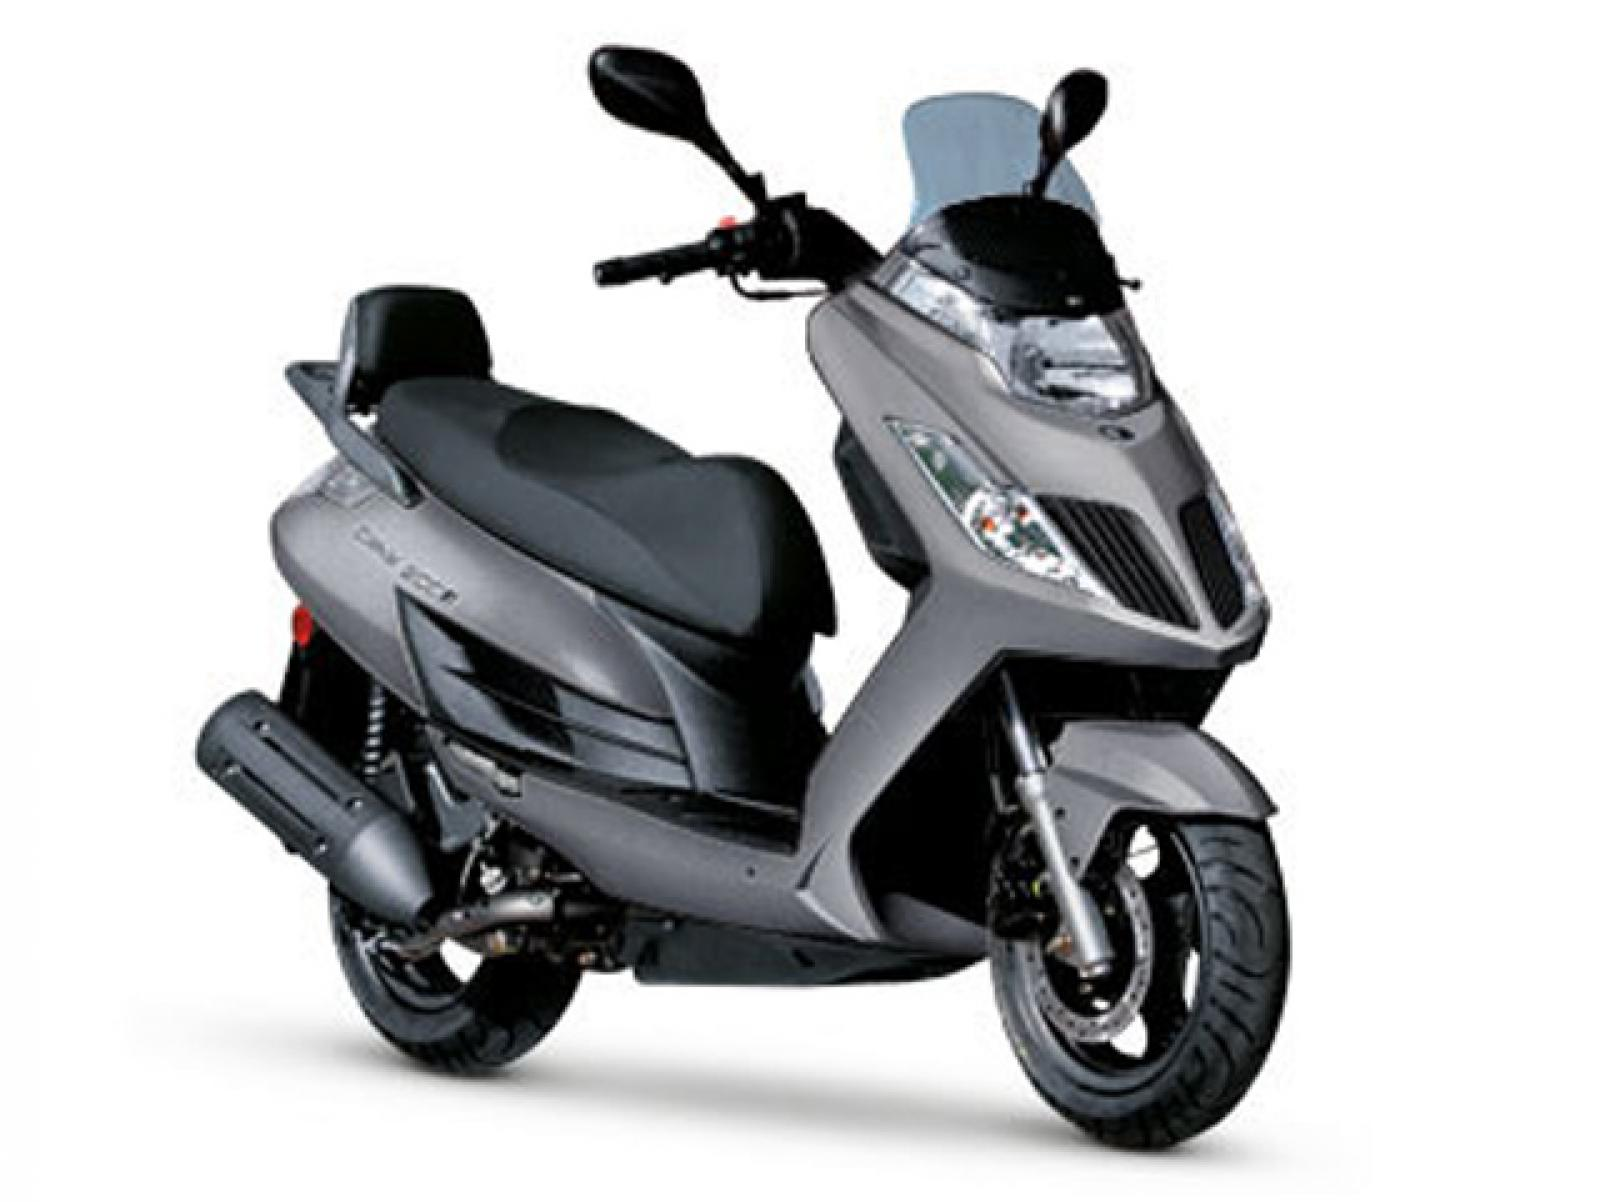 Kymco dink photo - 2